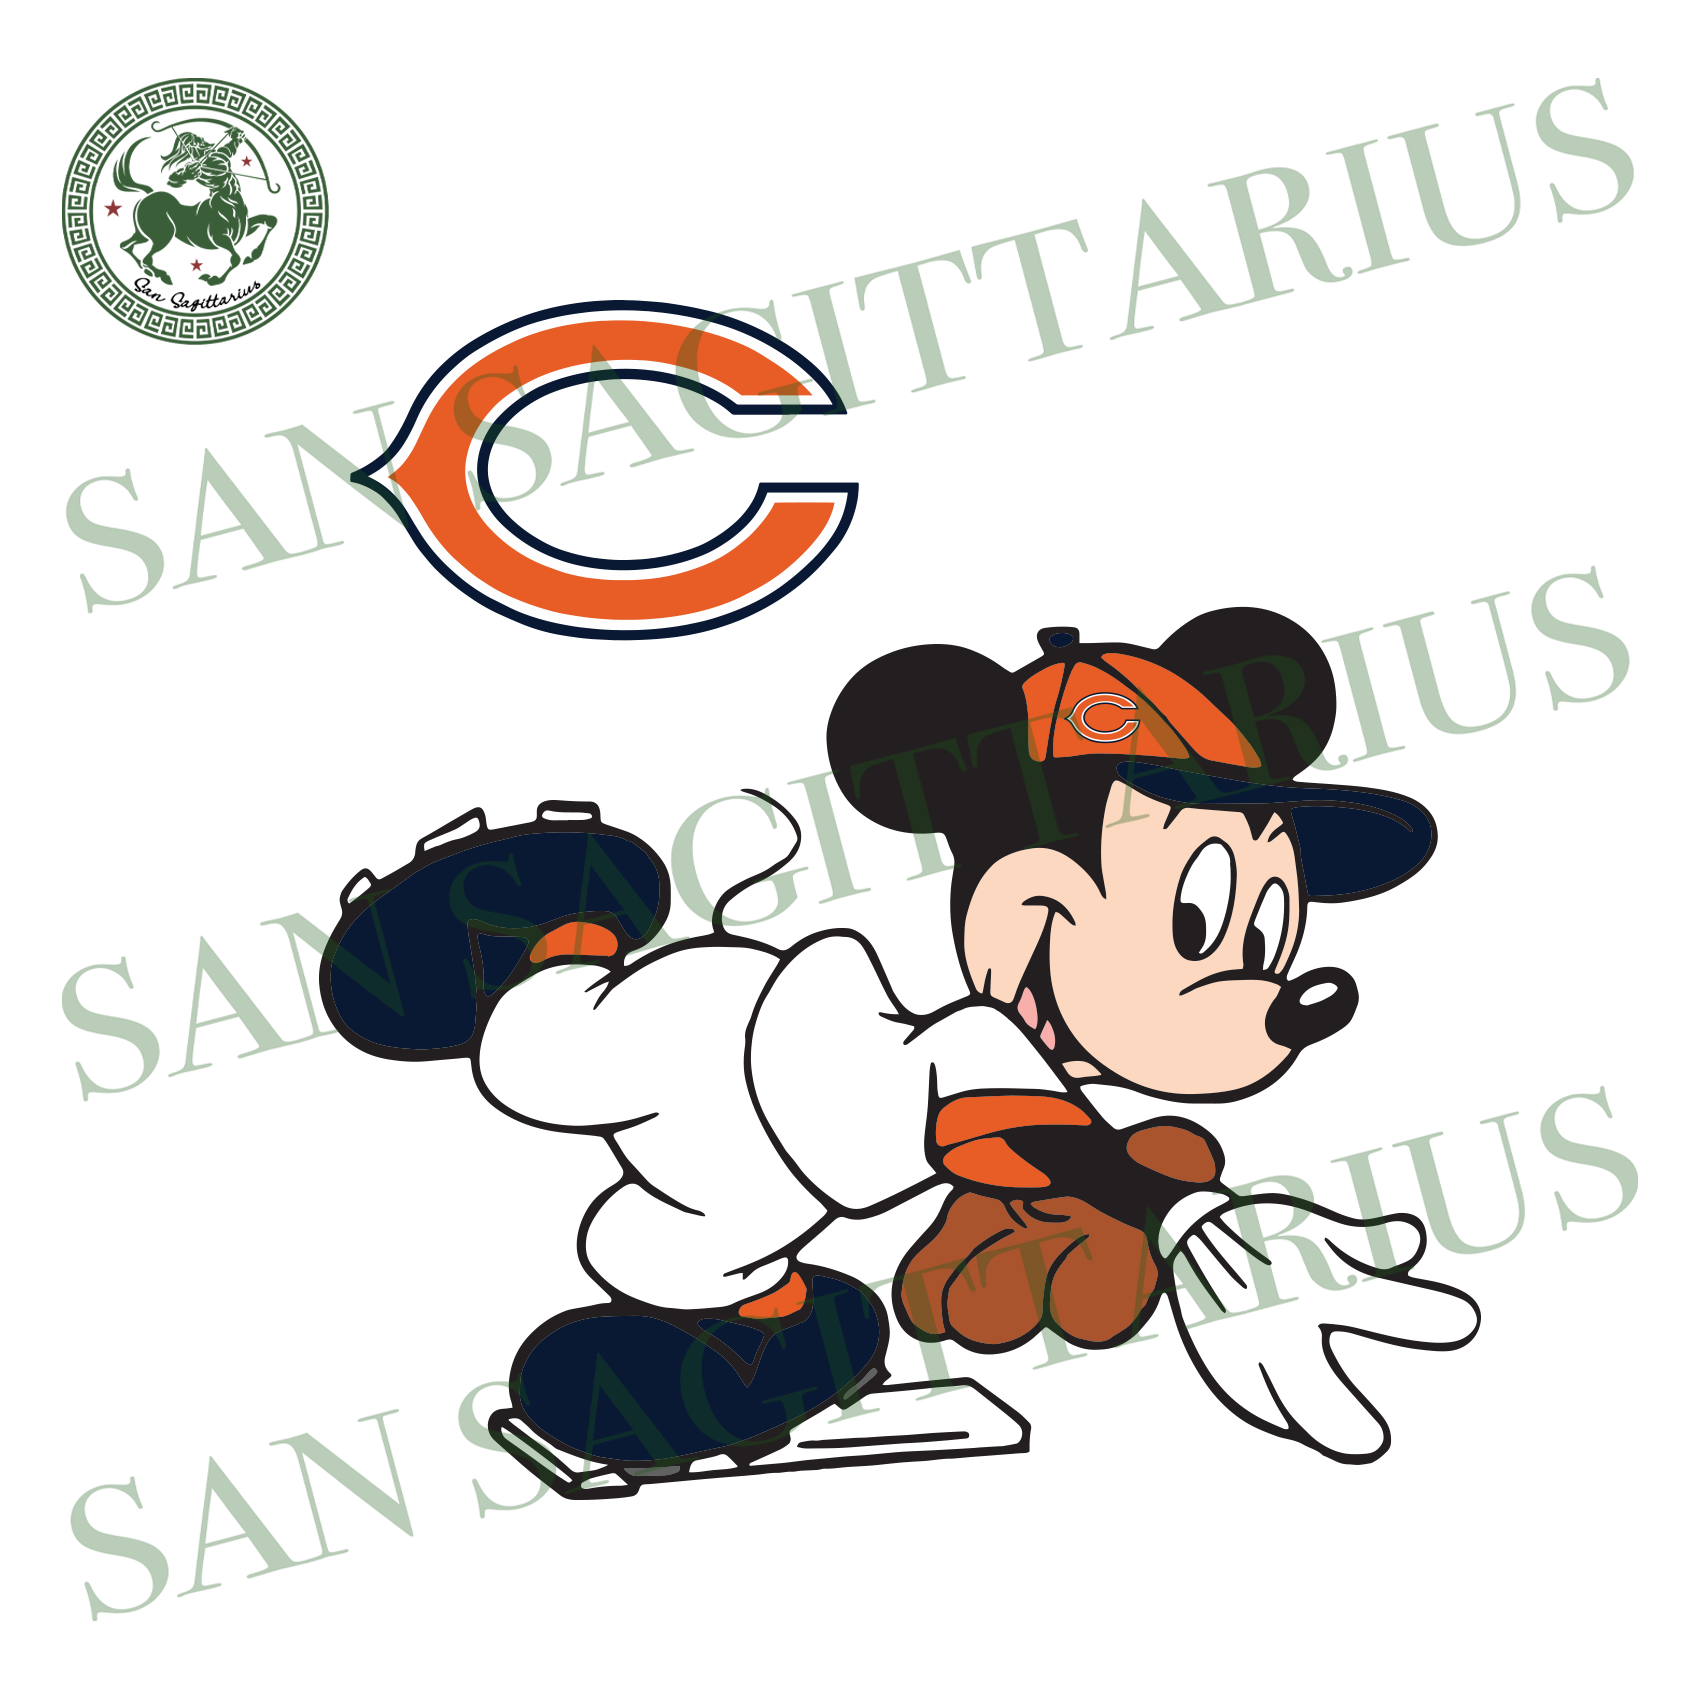 Chicago Bears Logo And Mickey, Sport Svg, NFL Football Svg, NFL Svg, NFL Sport, Chicago Bears Svg, Chicago Bears, Chicago Bears NFL Lover, Chicago Bears NFL Svg, Football Svg, Football Lover